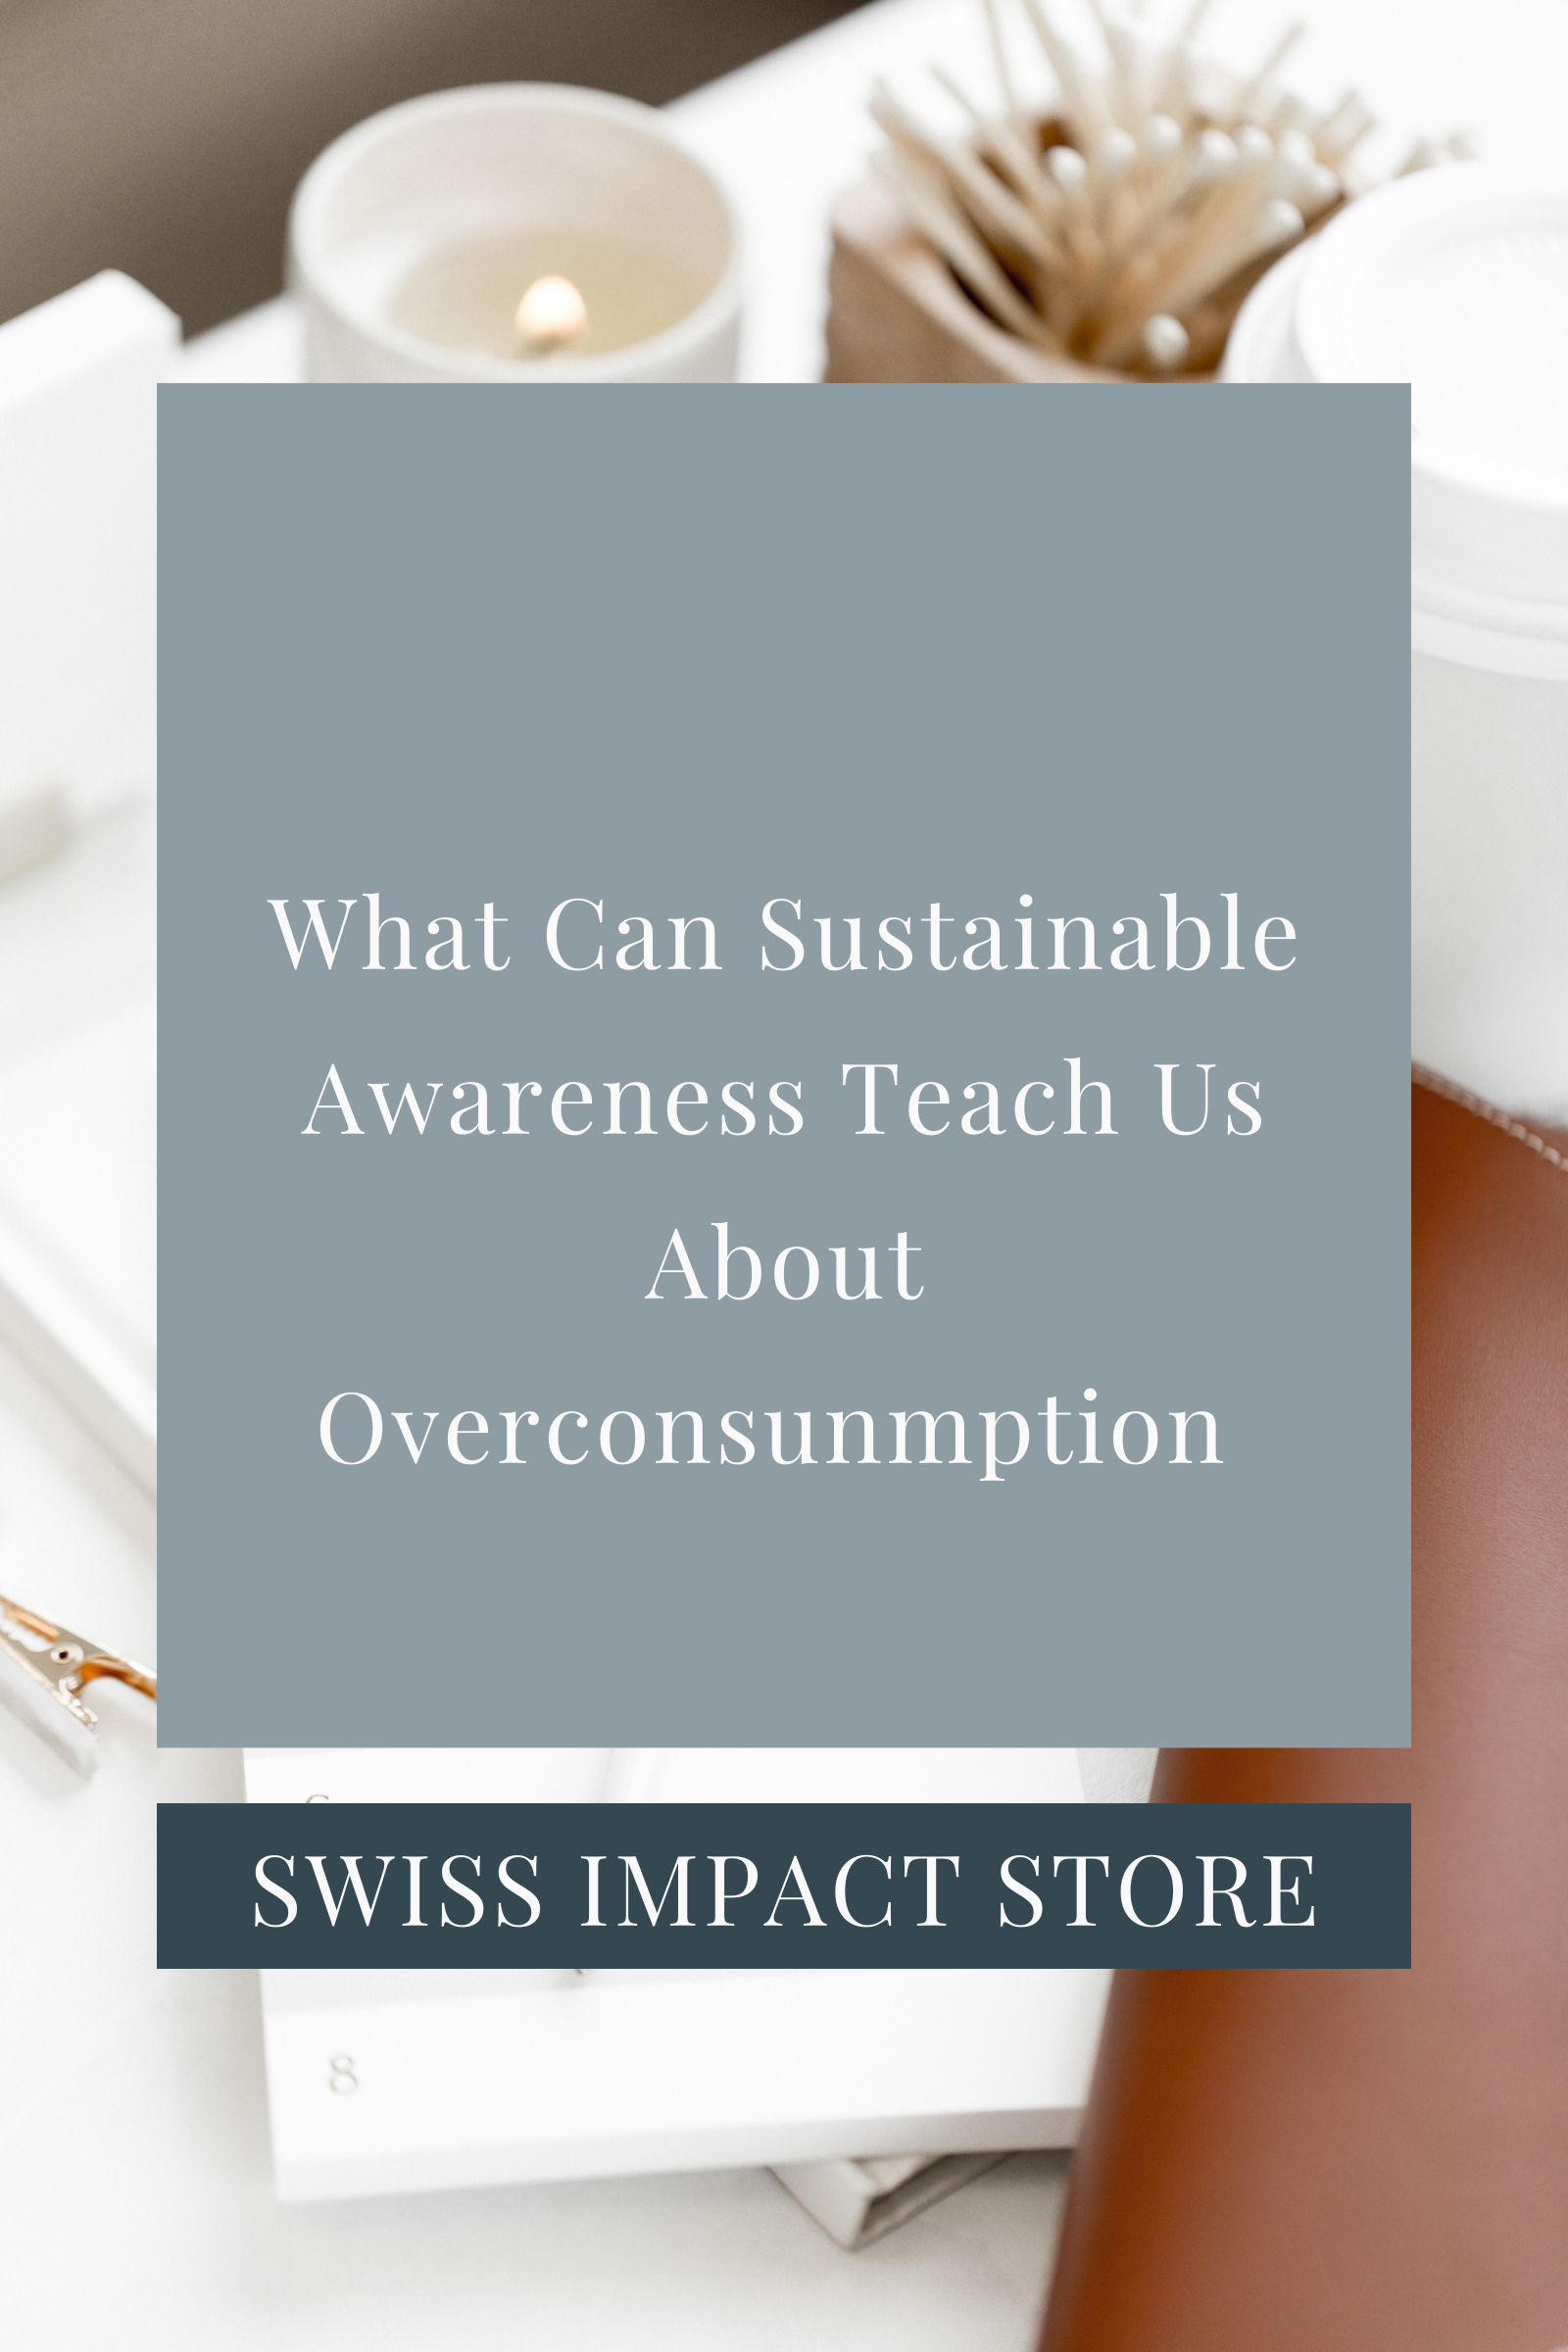 Sustainable Awareness and Overconsumption